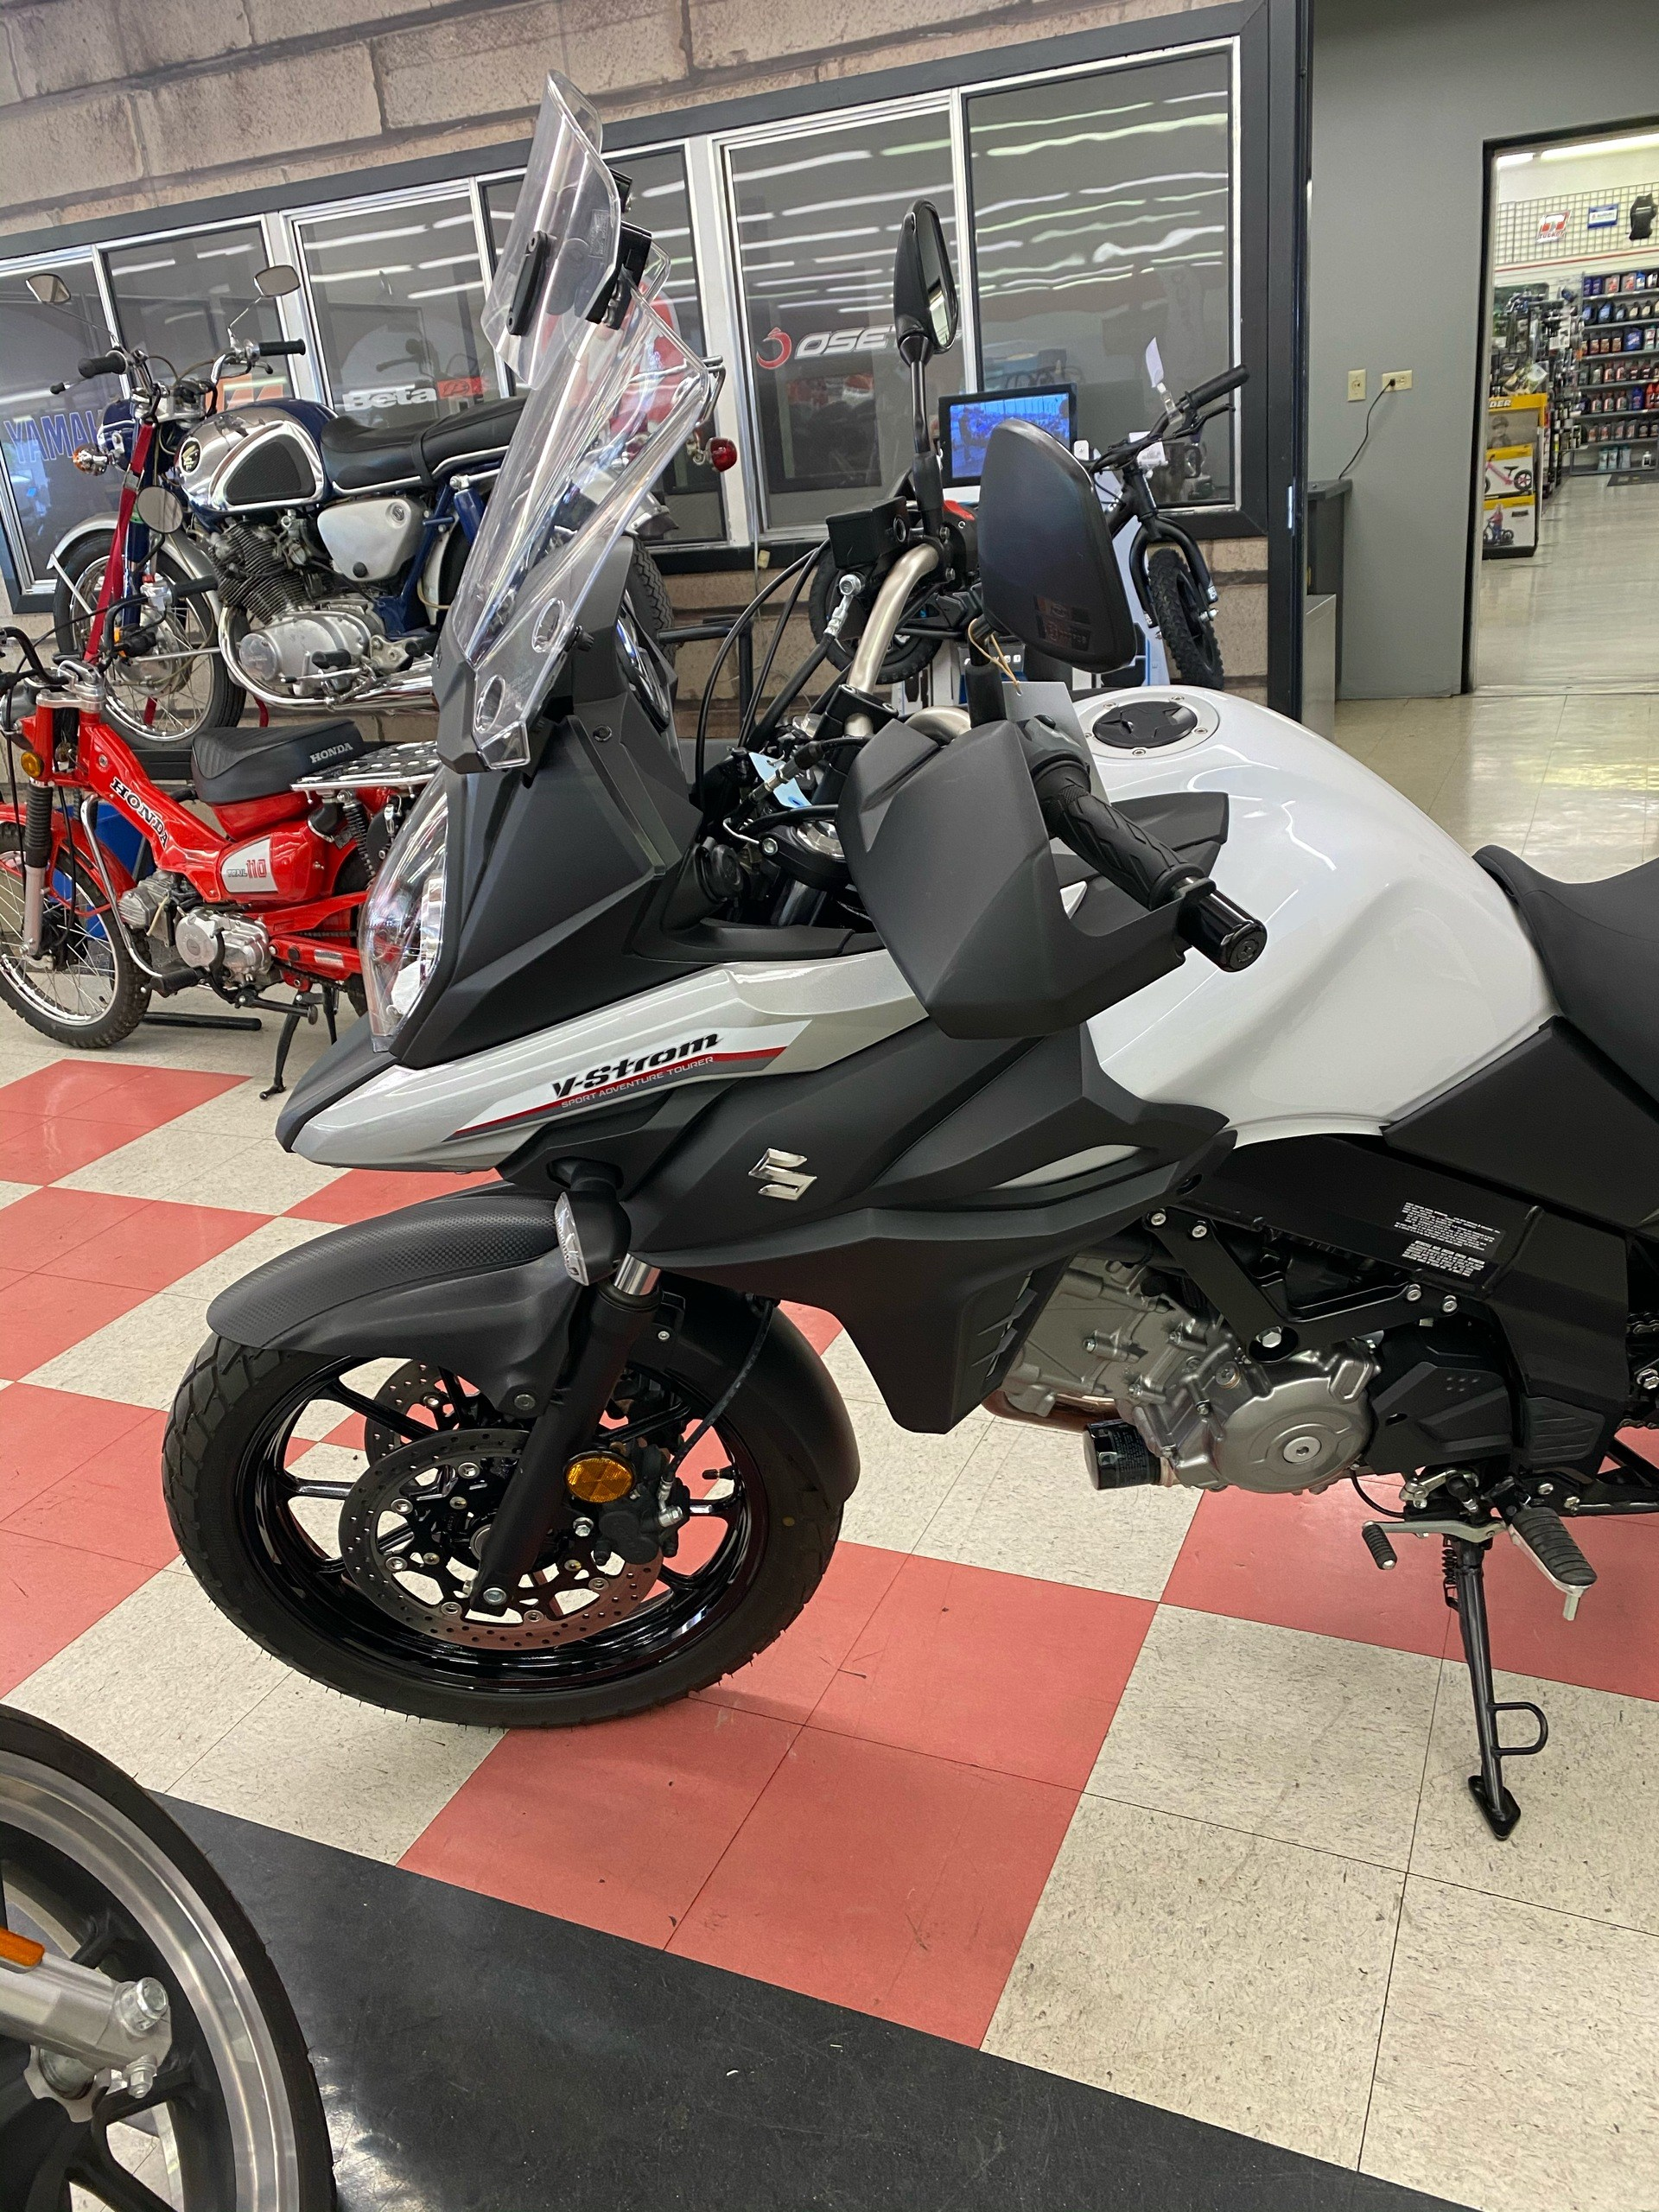 2017 Suzuki V-Strom 650 in Colorado Springs, Colorado - Photo 2